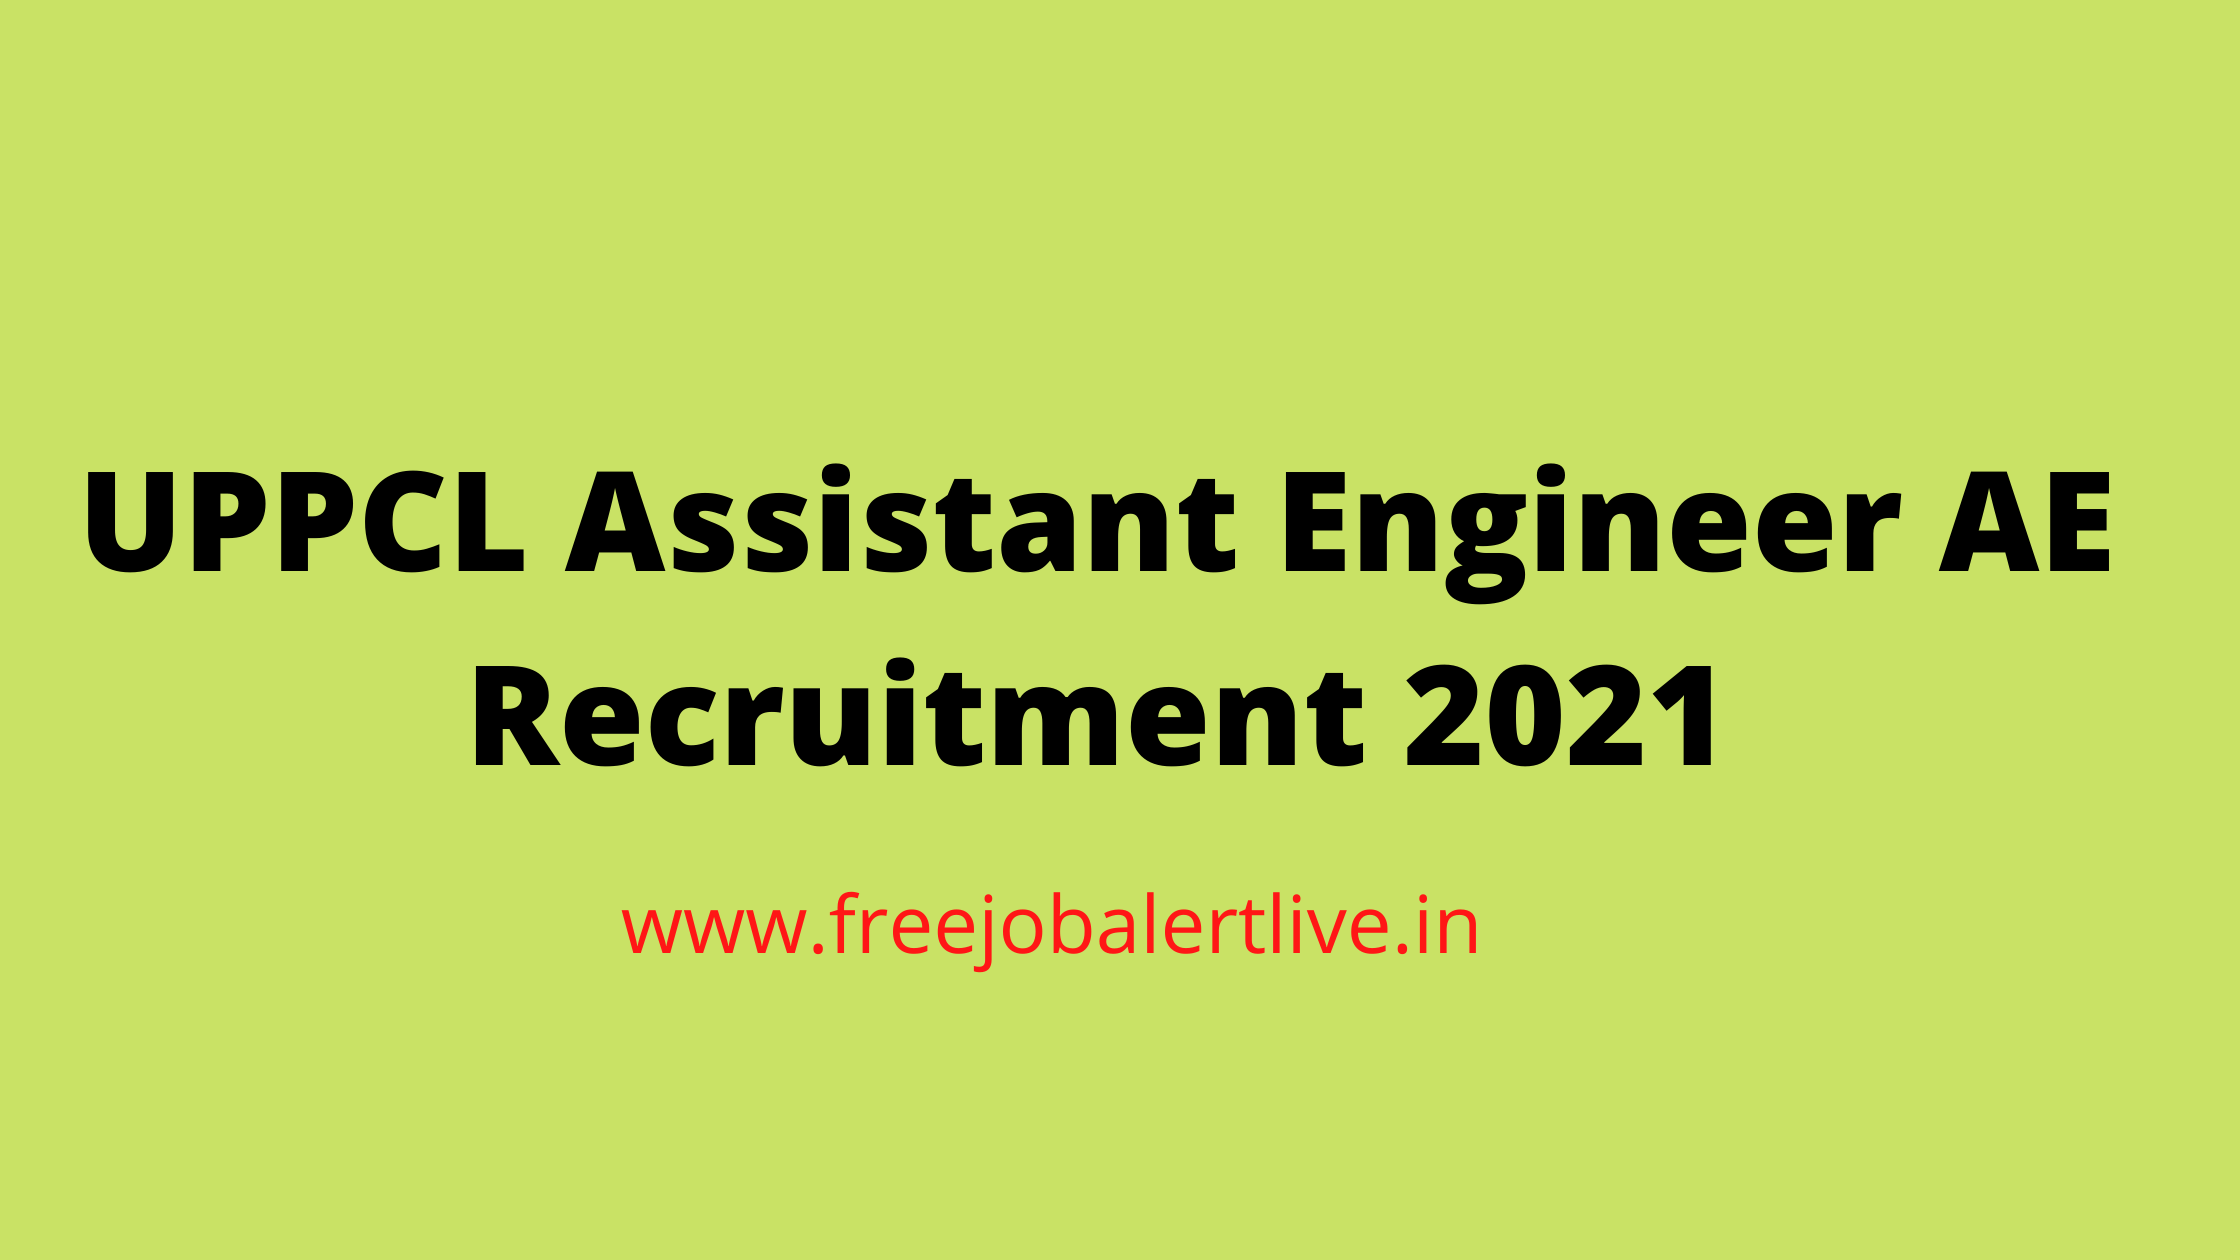 UPPCL Assistant Engineer AE Recruitment 2021